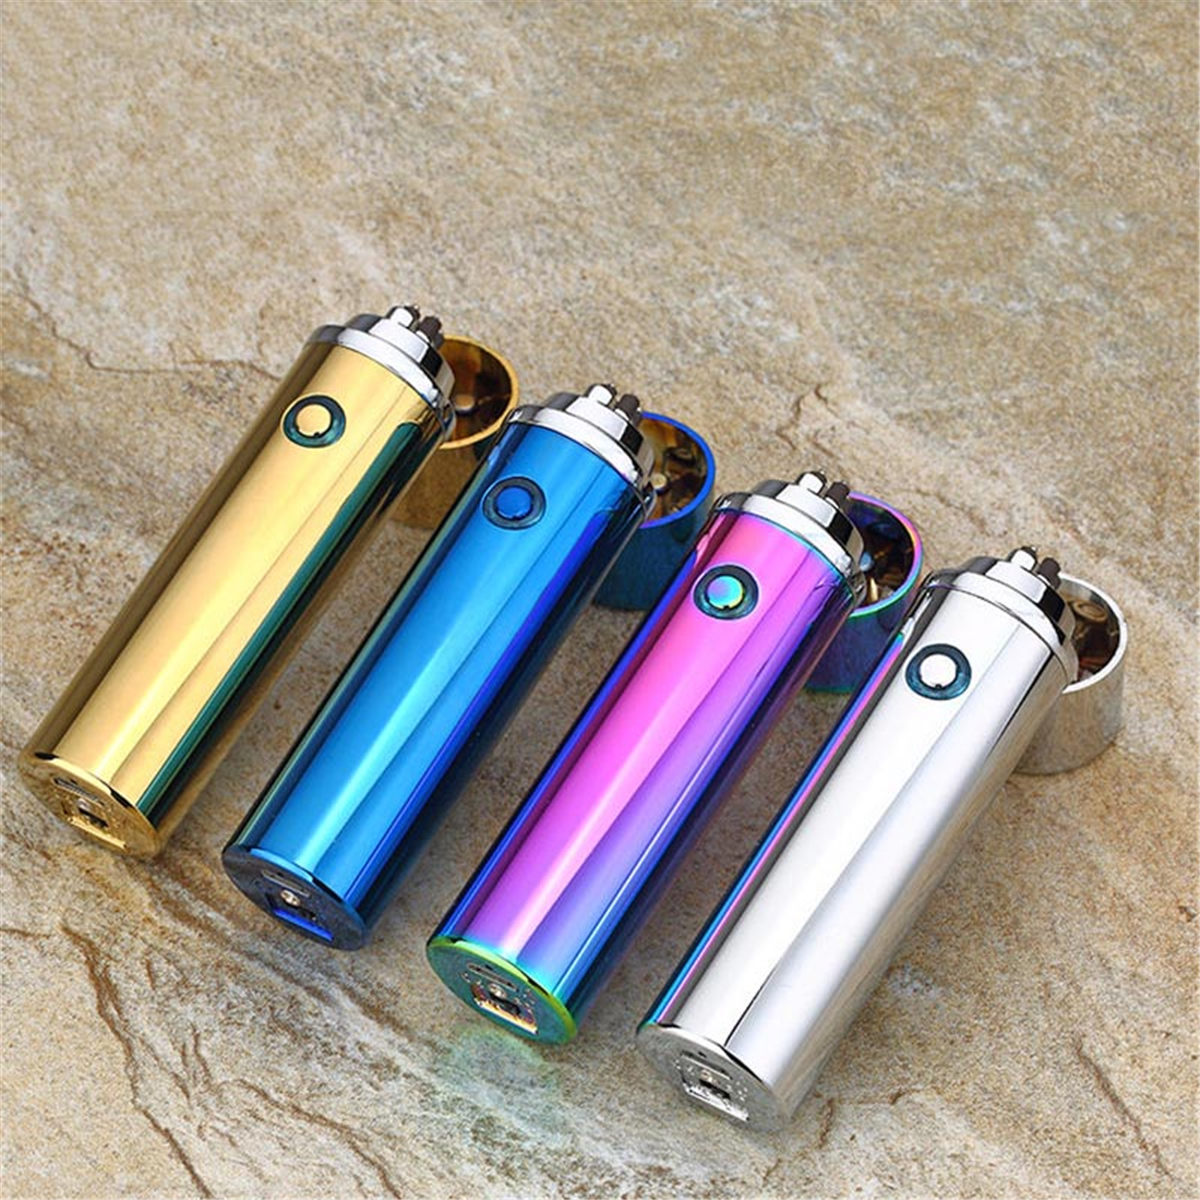 6 Colors Electronic Cigarette Lighter USB Rechargable Windproof Electric Double Arc Pulse Smoking Lighters Torch Gifts for Men in Lighters from Home Garden